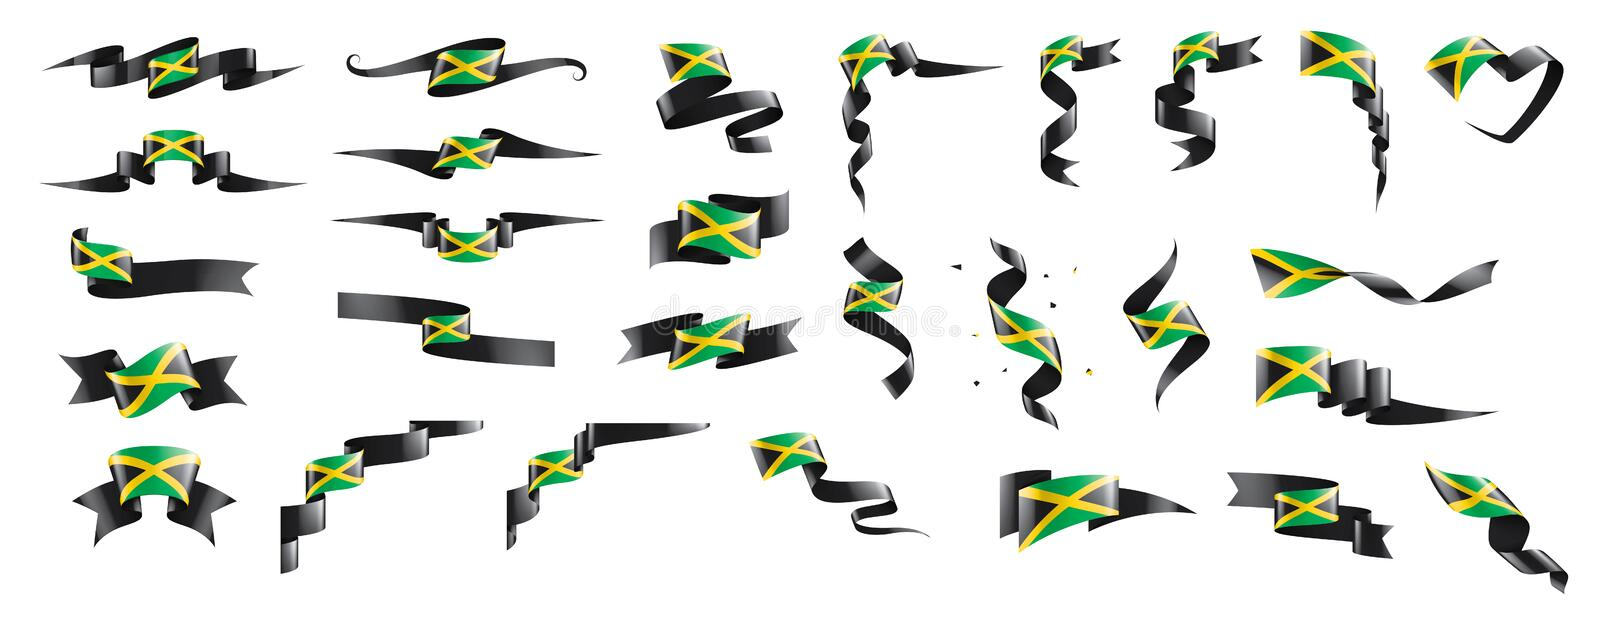 Jamaica flag, vector illustration on a white background. Jamaica national flag, vector illustration on a white background royalty free illustration